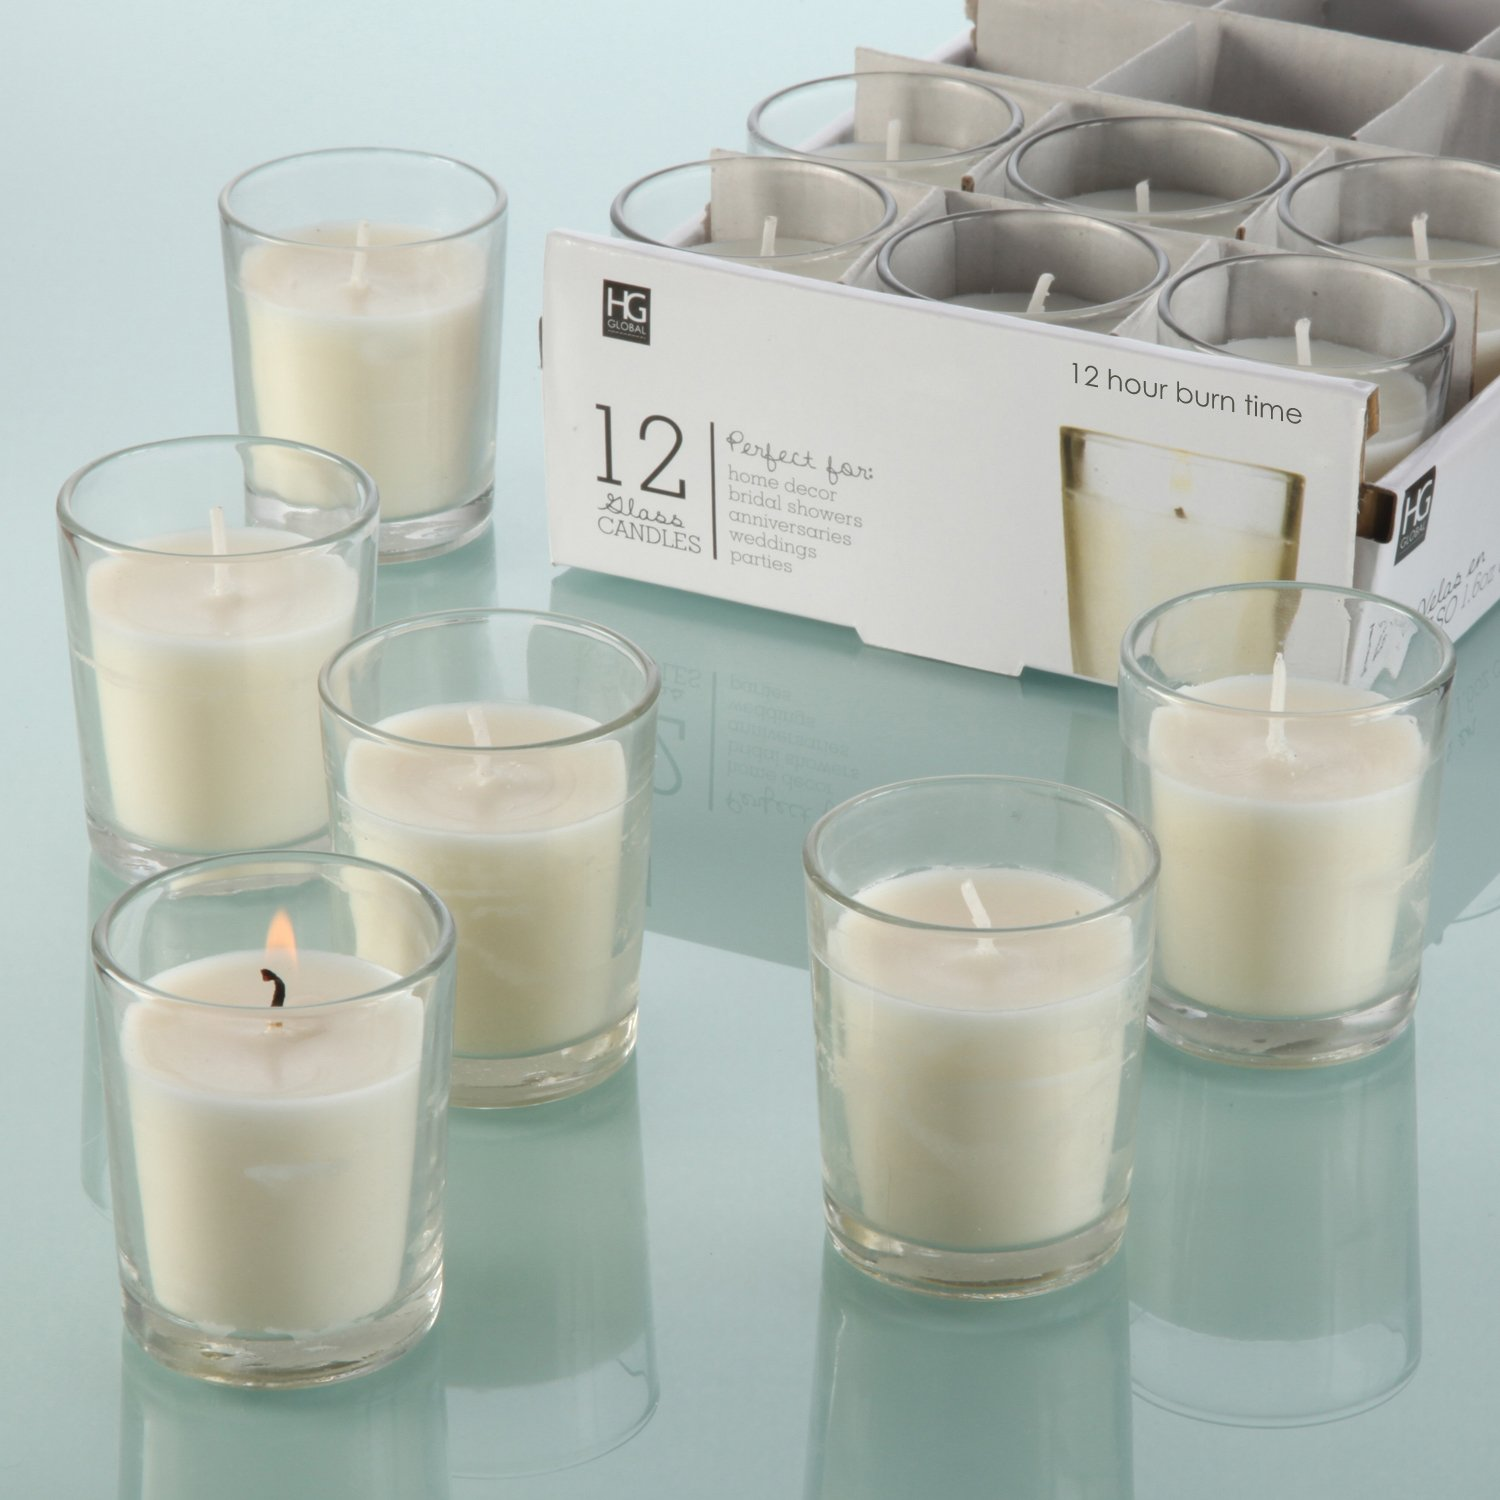 Hosley Set of 24 Unscented Clear Glass Wax Filled Votive Candles, Up to 12 Hour Burn Time. Glass Votive & Hand Poured Candle Included, Ideal for Aromatherapy, Weddings, Party Favors O1